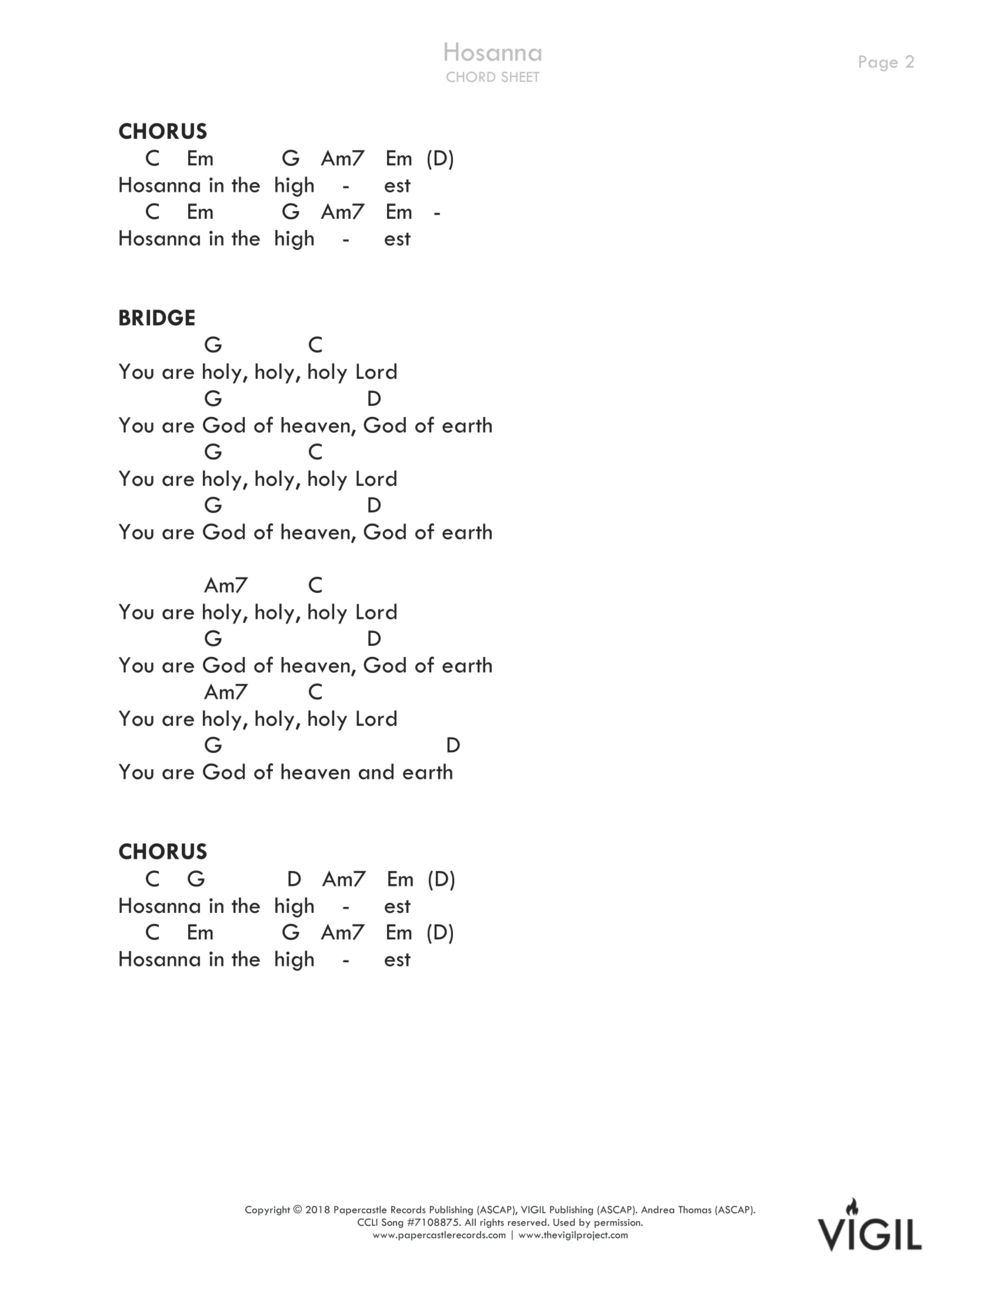 Hosanna-CHORD+SHEET+(G+Major)-2.png